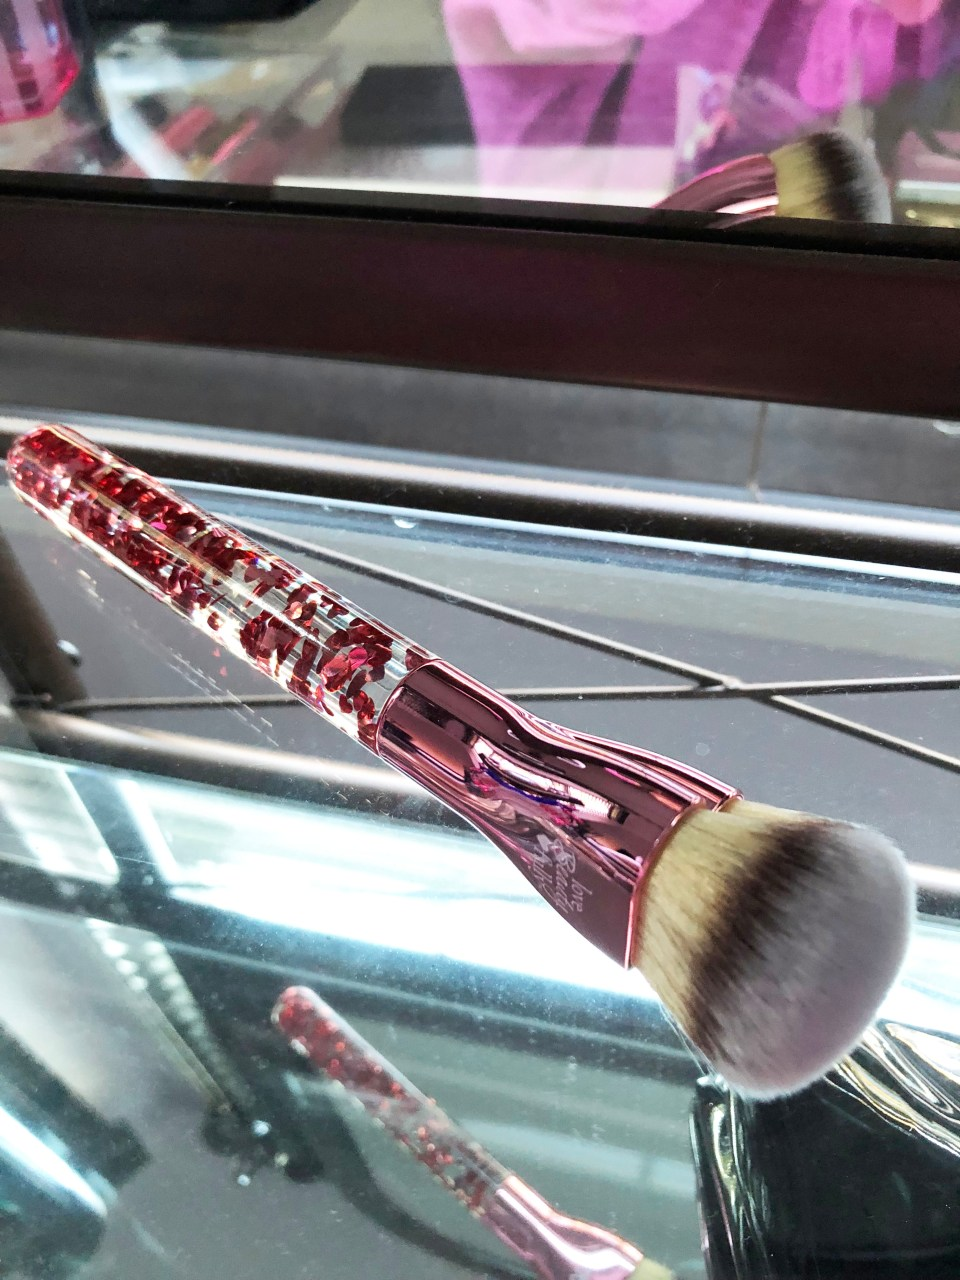 IT Cosmetics - Love is the foundation brush